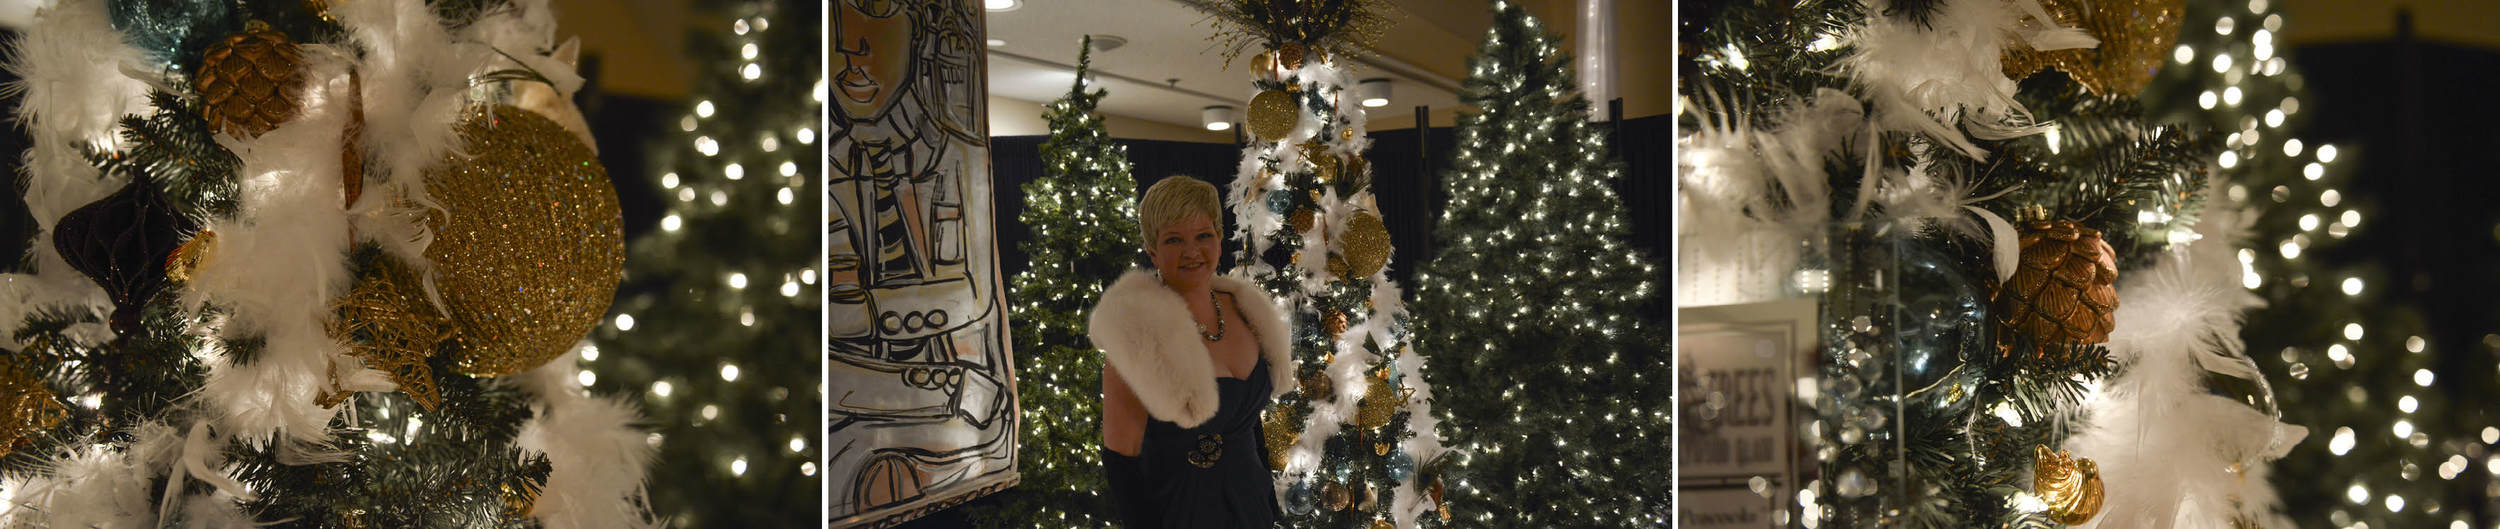 Festival of the trees_Page_22.jpg